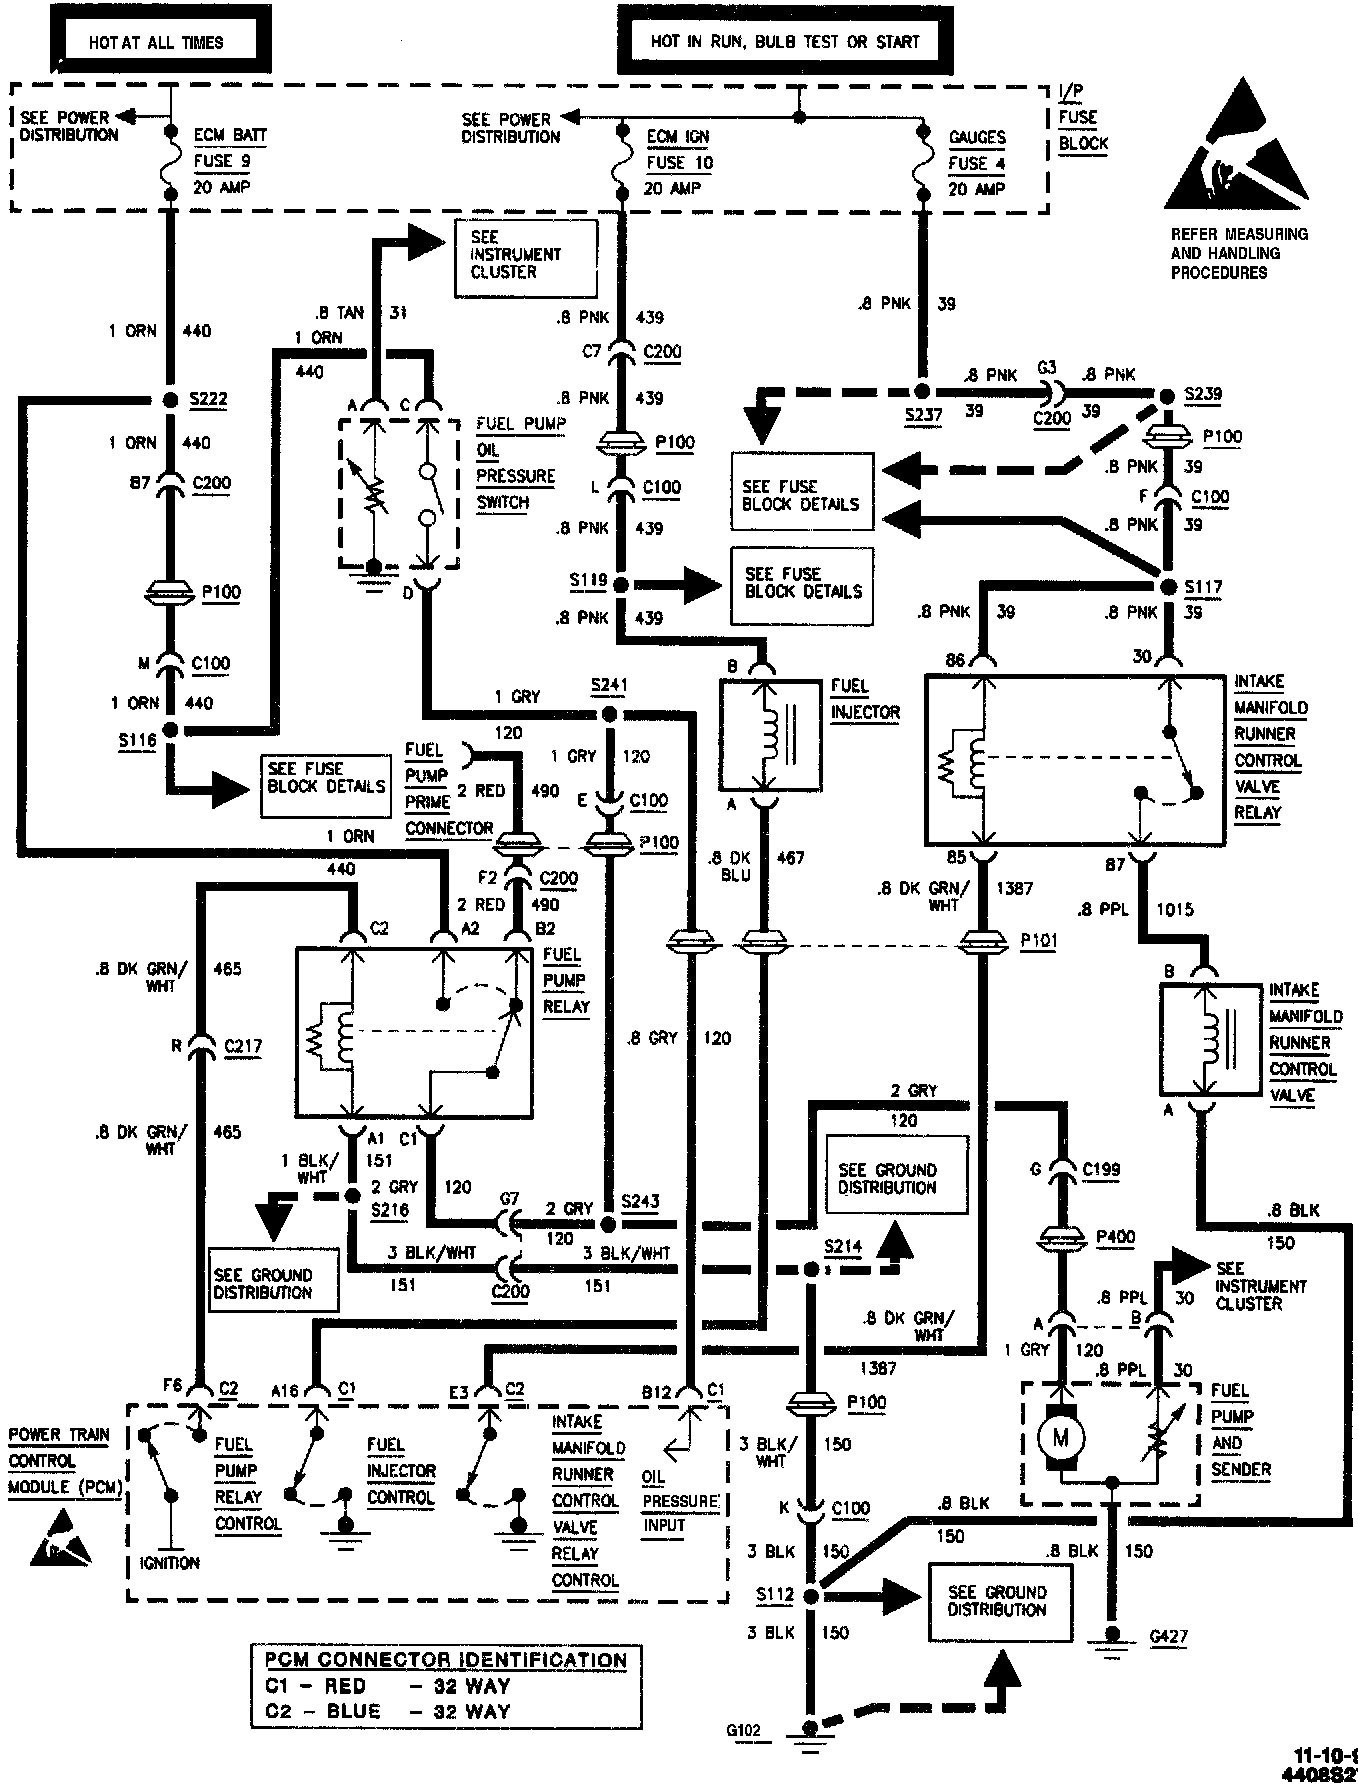 1996 Chevy S10 Wiring Diagram My Wiring DIagram